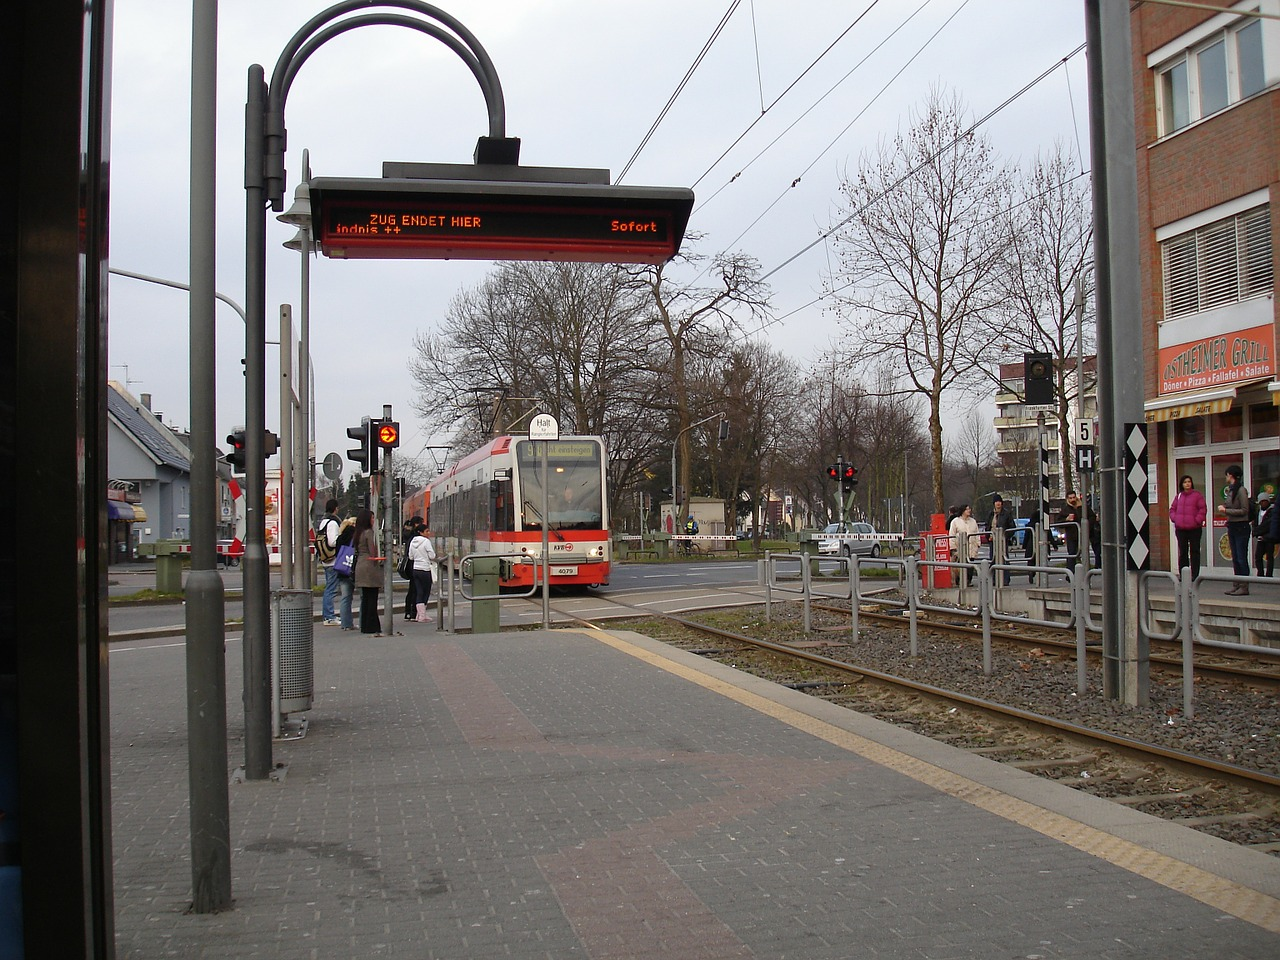 tram stop waiting time free photo